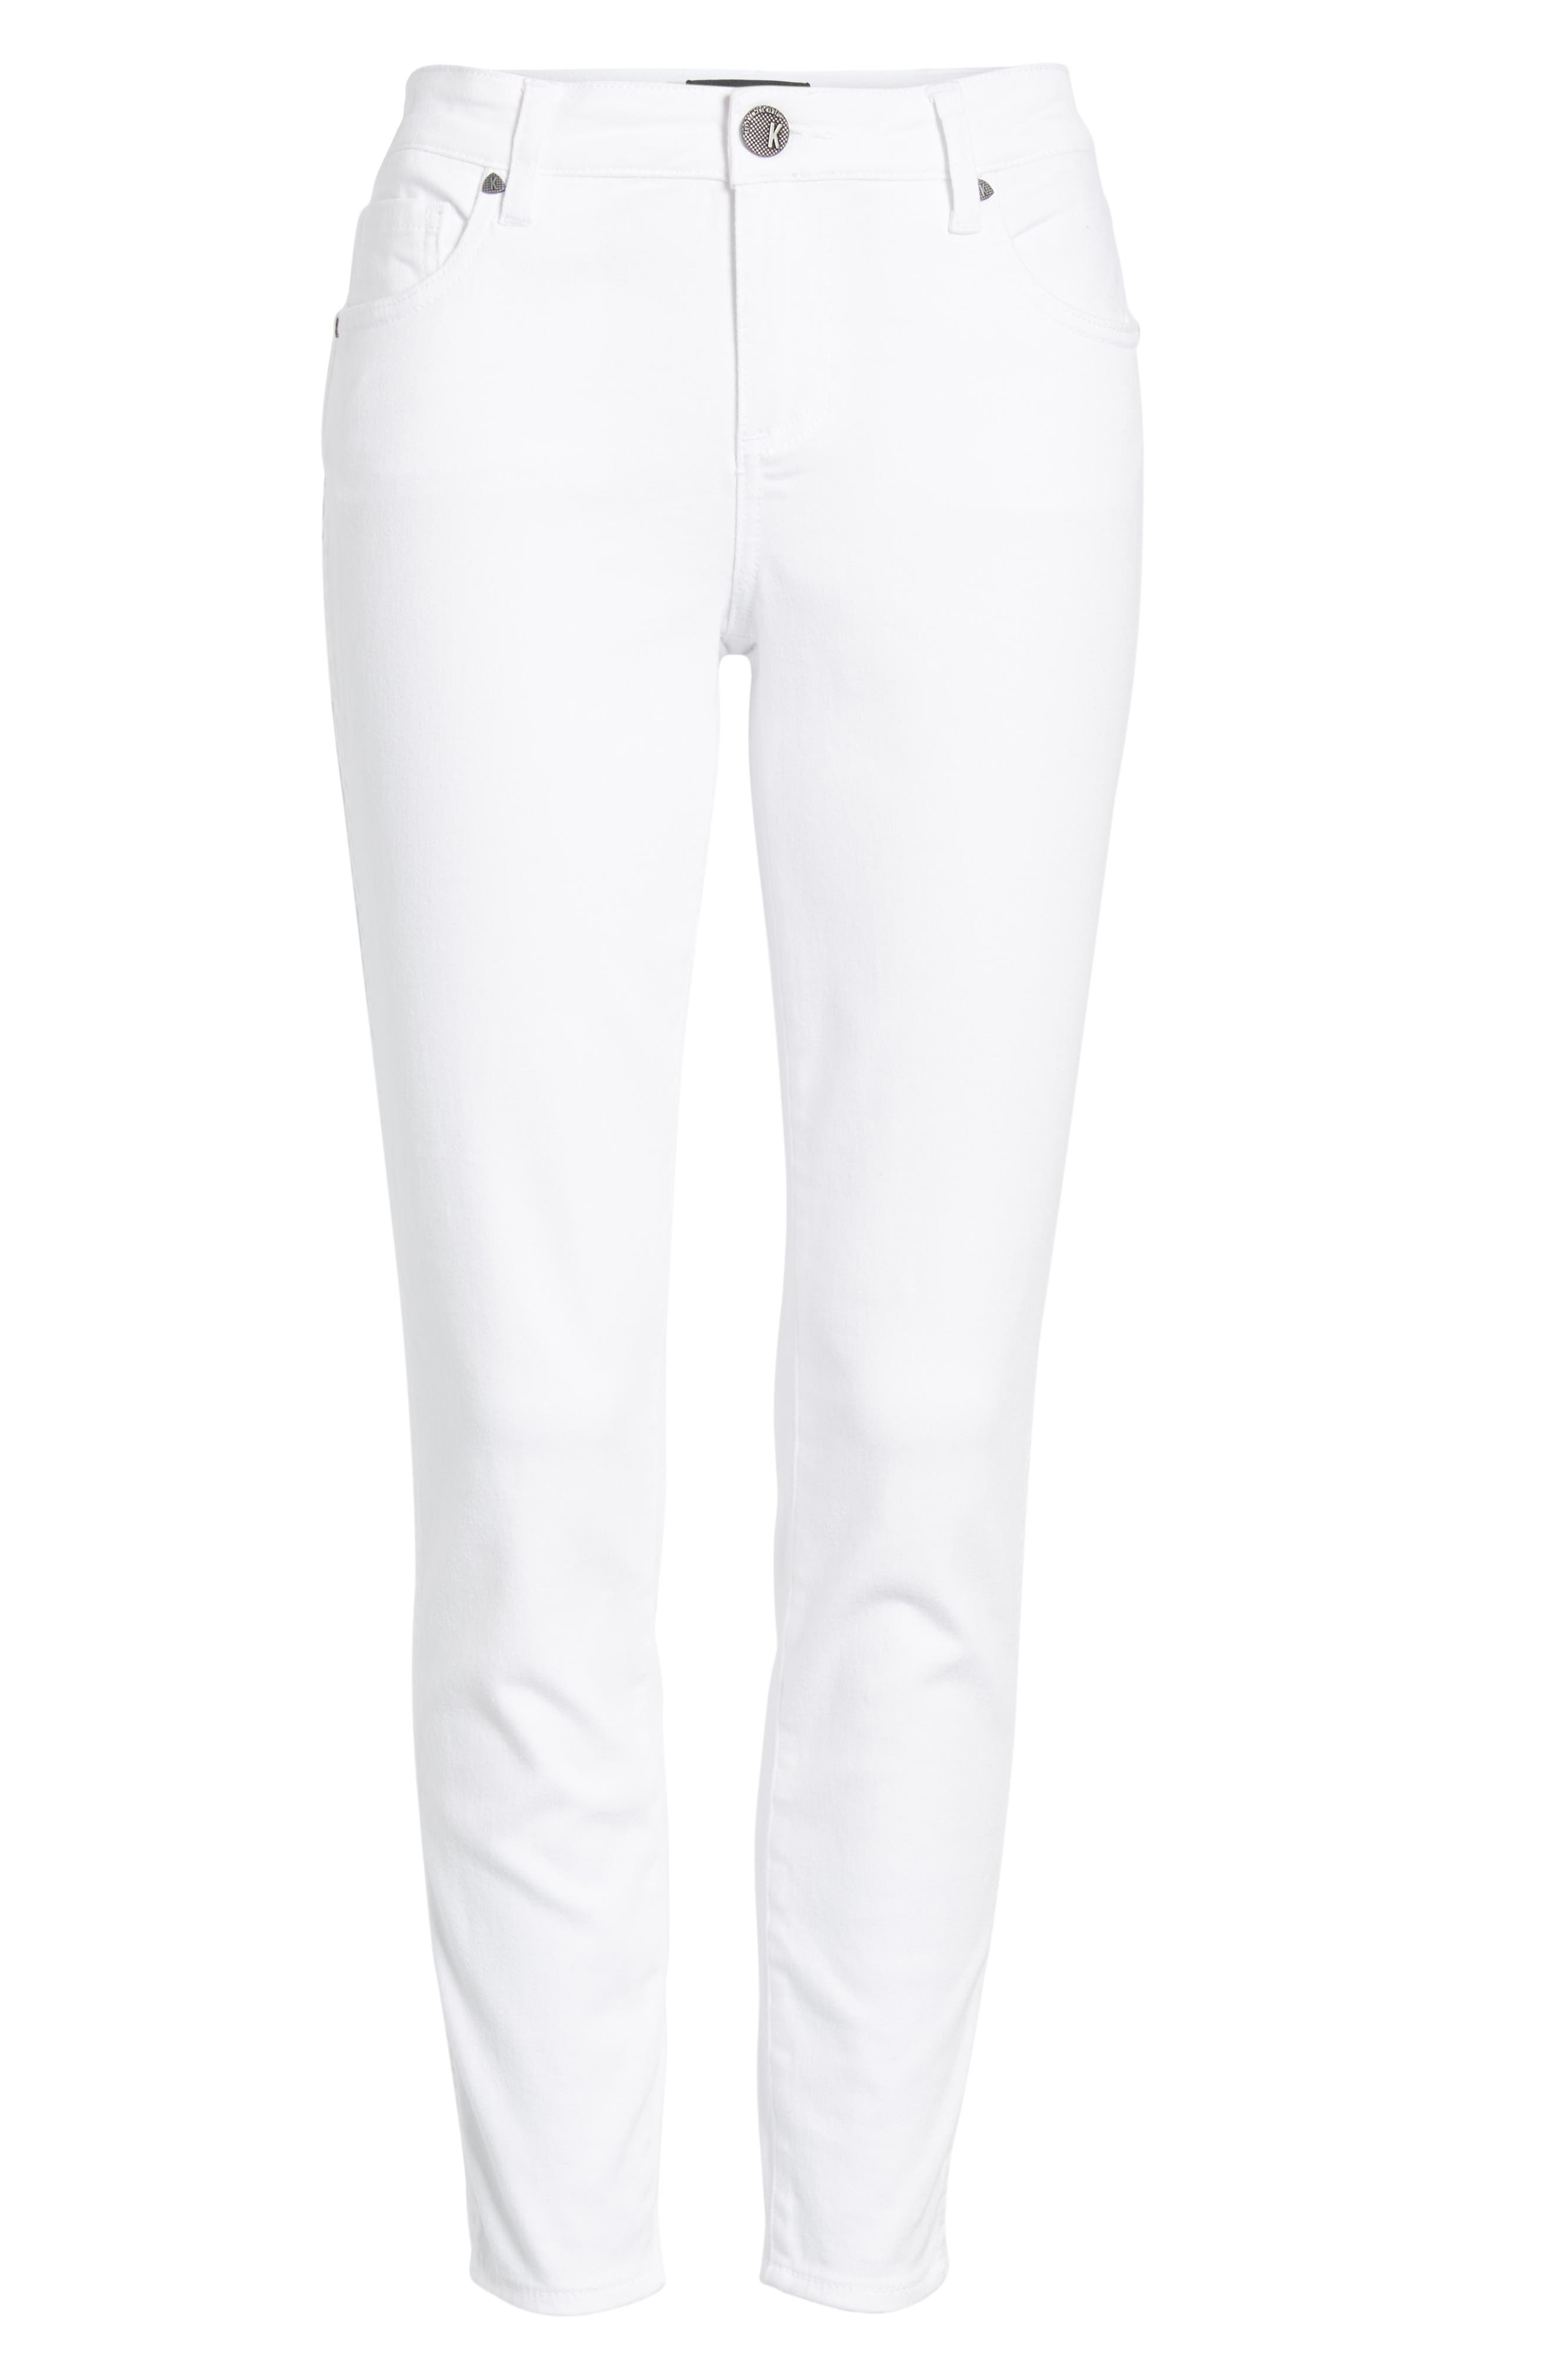 KUT FROM THE KLOTH, Donna Ankle Skinny Jeans, Alternate thumbnail 7, color, OPTIC WHITE